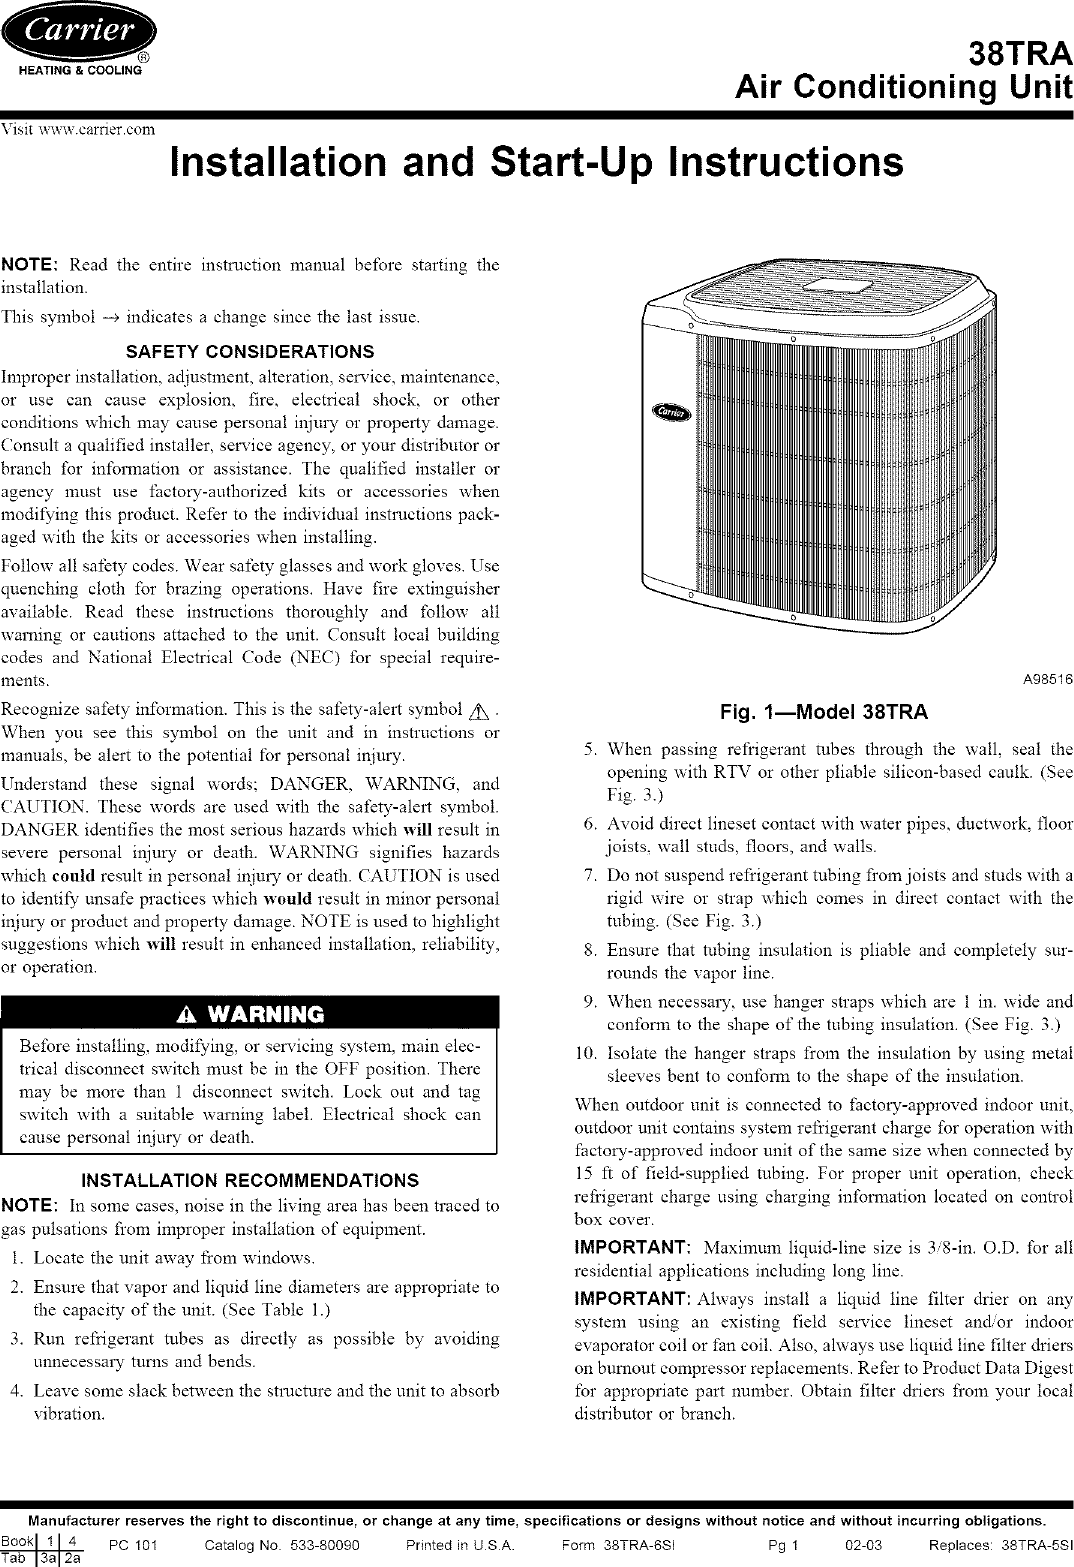 Carrier 38tra Air Conditioner User Manual. Feels free to